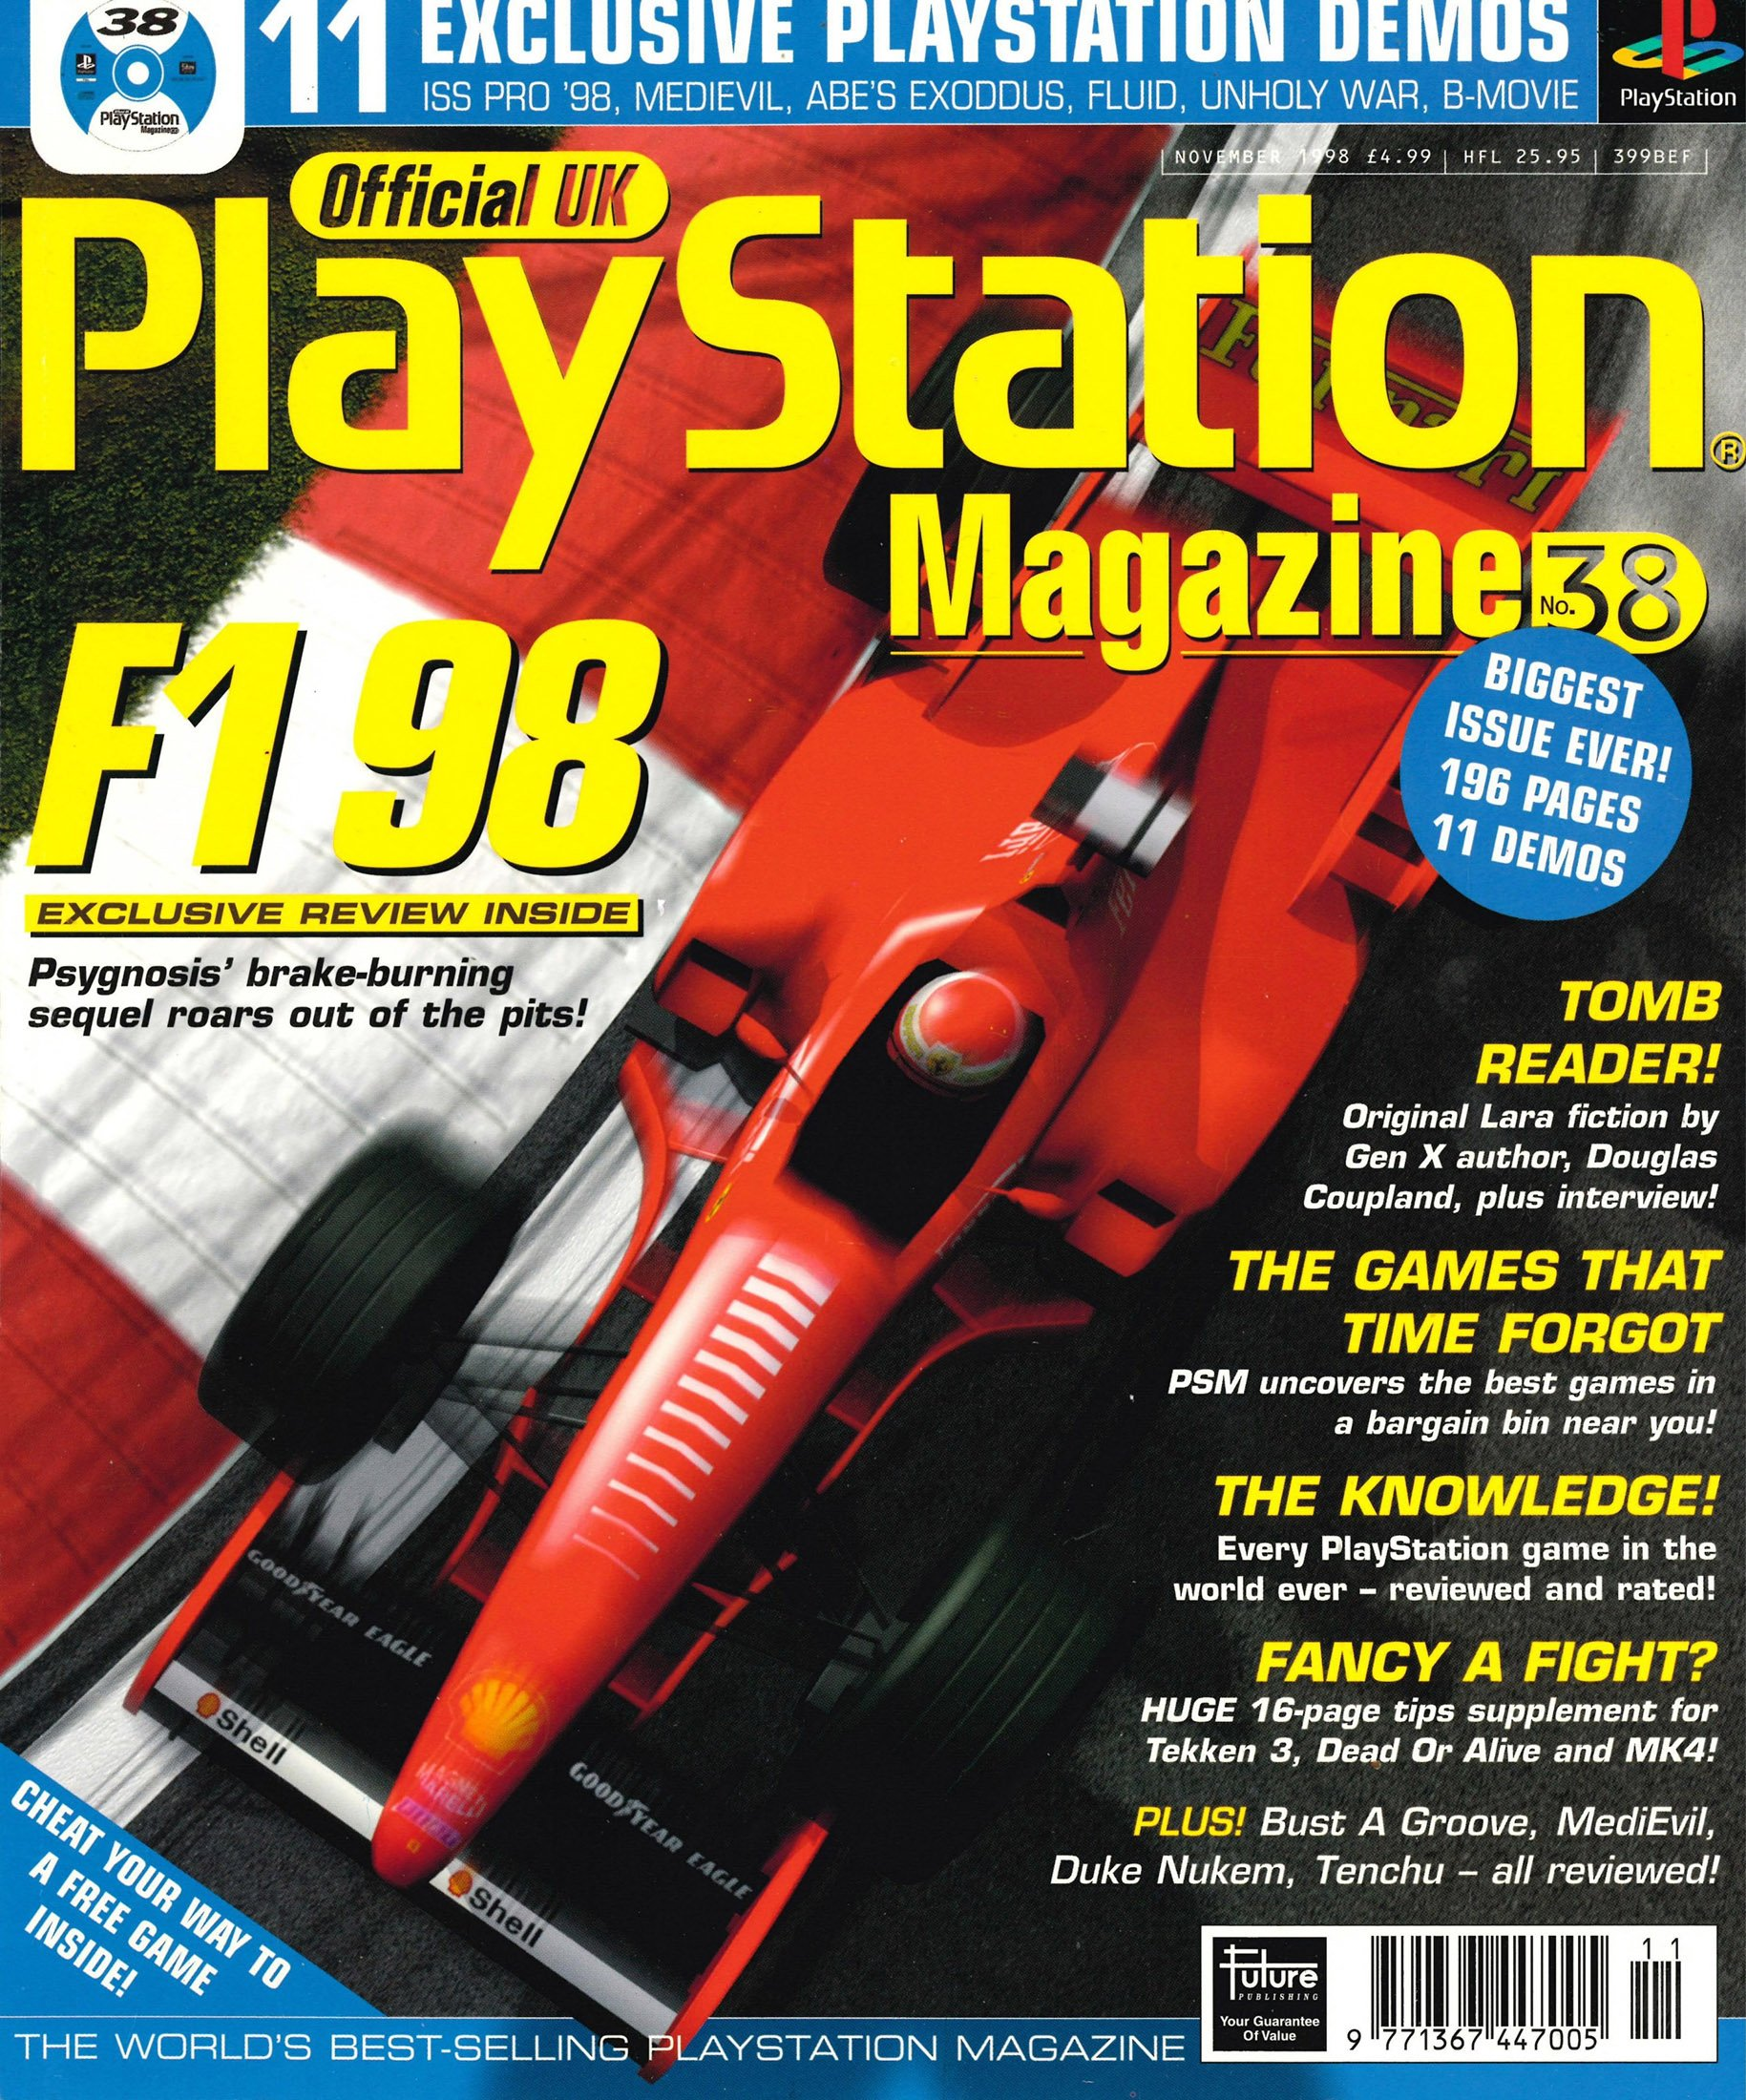 Official UK PlayStation Magazine Issue 038 (November 1998)